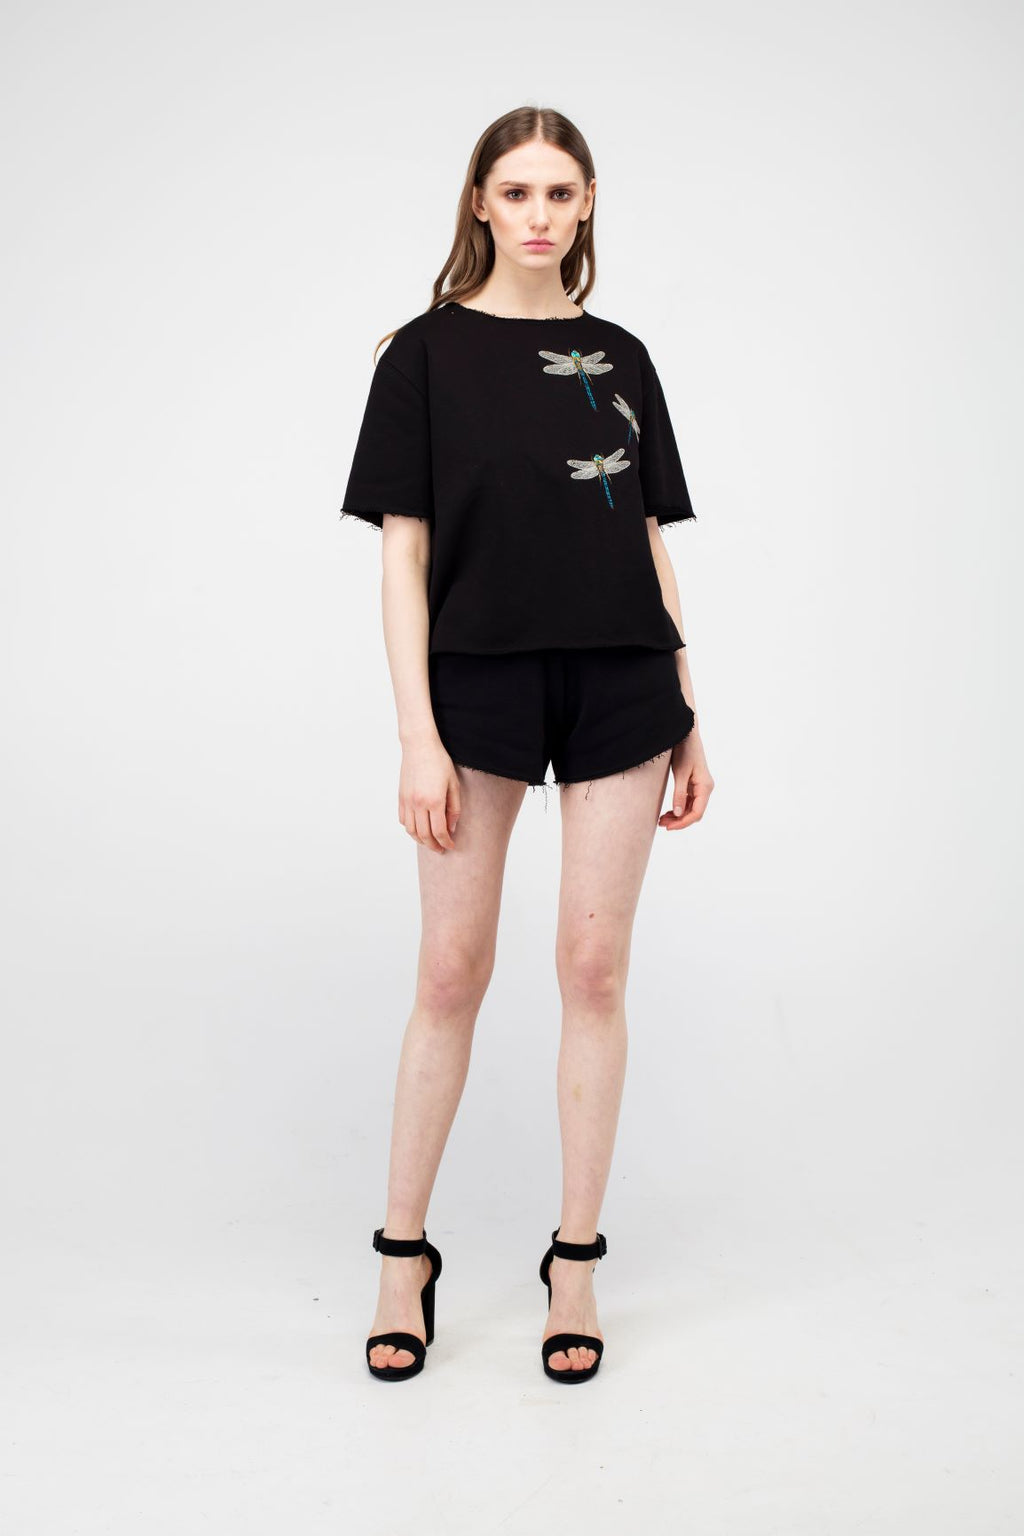 Black Embroidered Dragonfly Girls Set - LAZY FRANCIS - Shop in store at 406 Kings Road, Chelsea, London or shop online at www.lazyfrancis.com